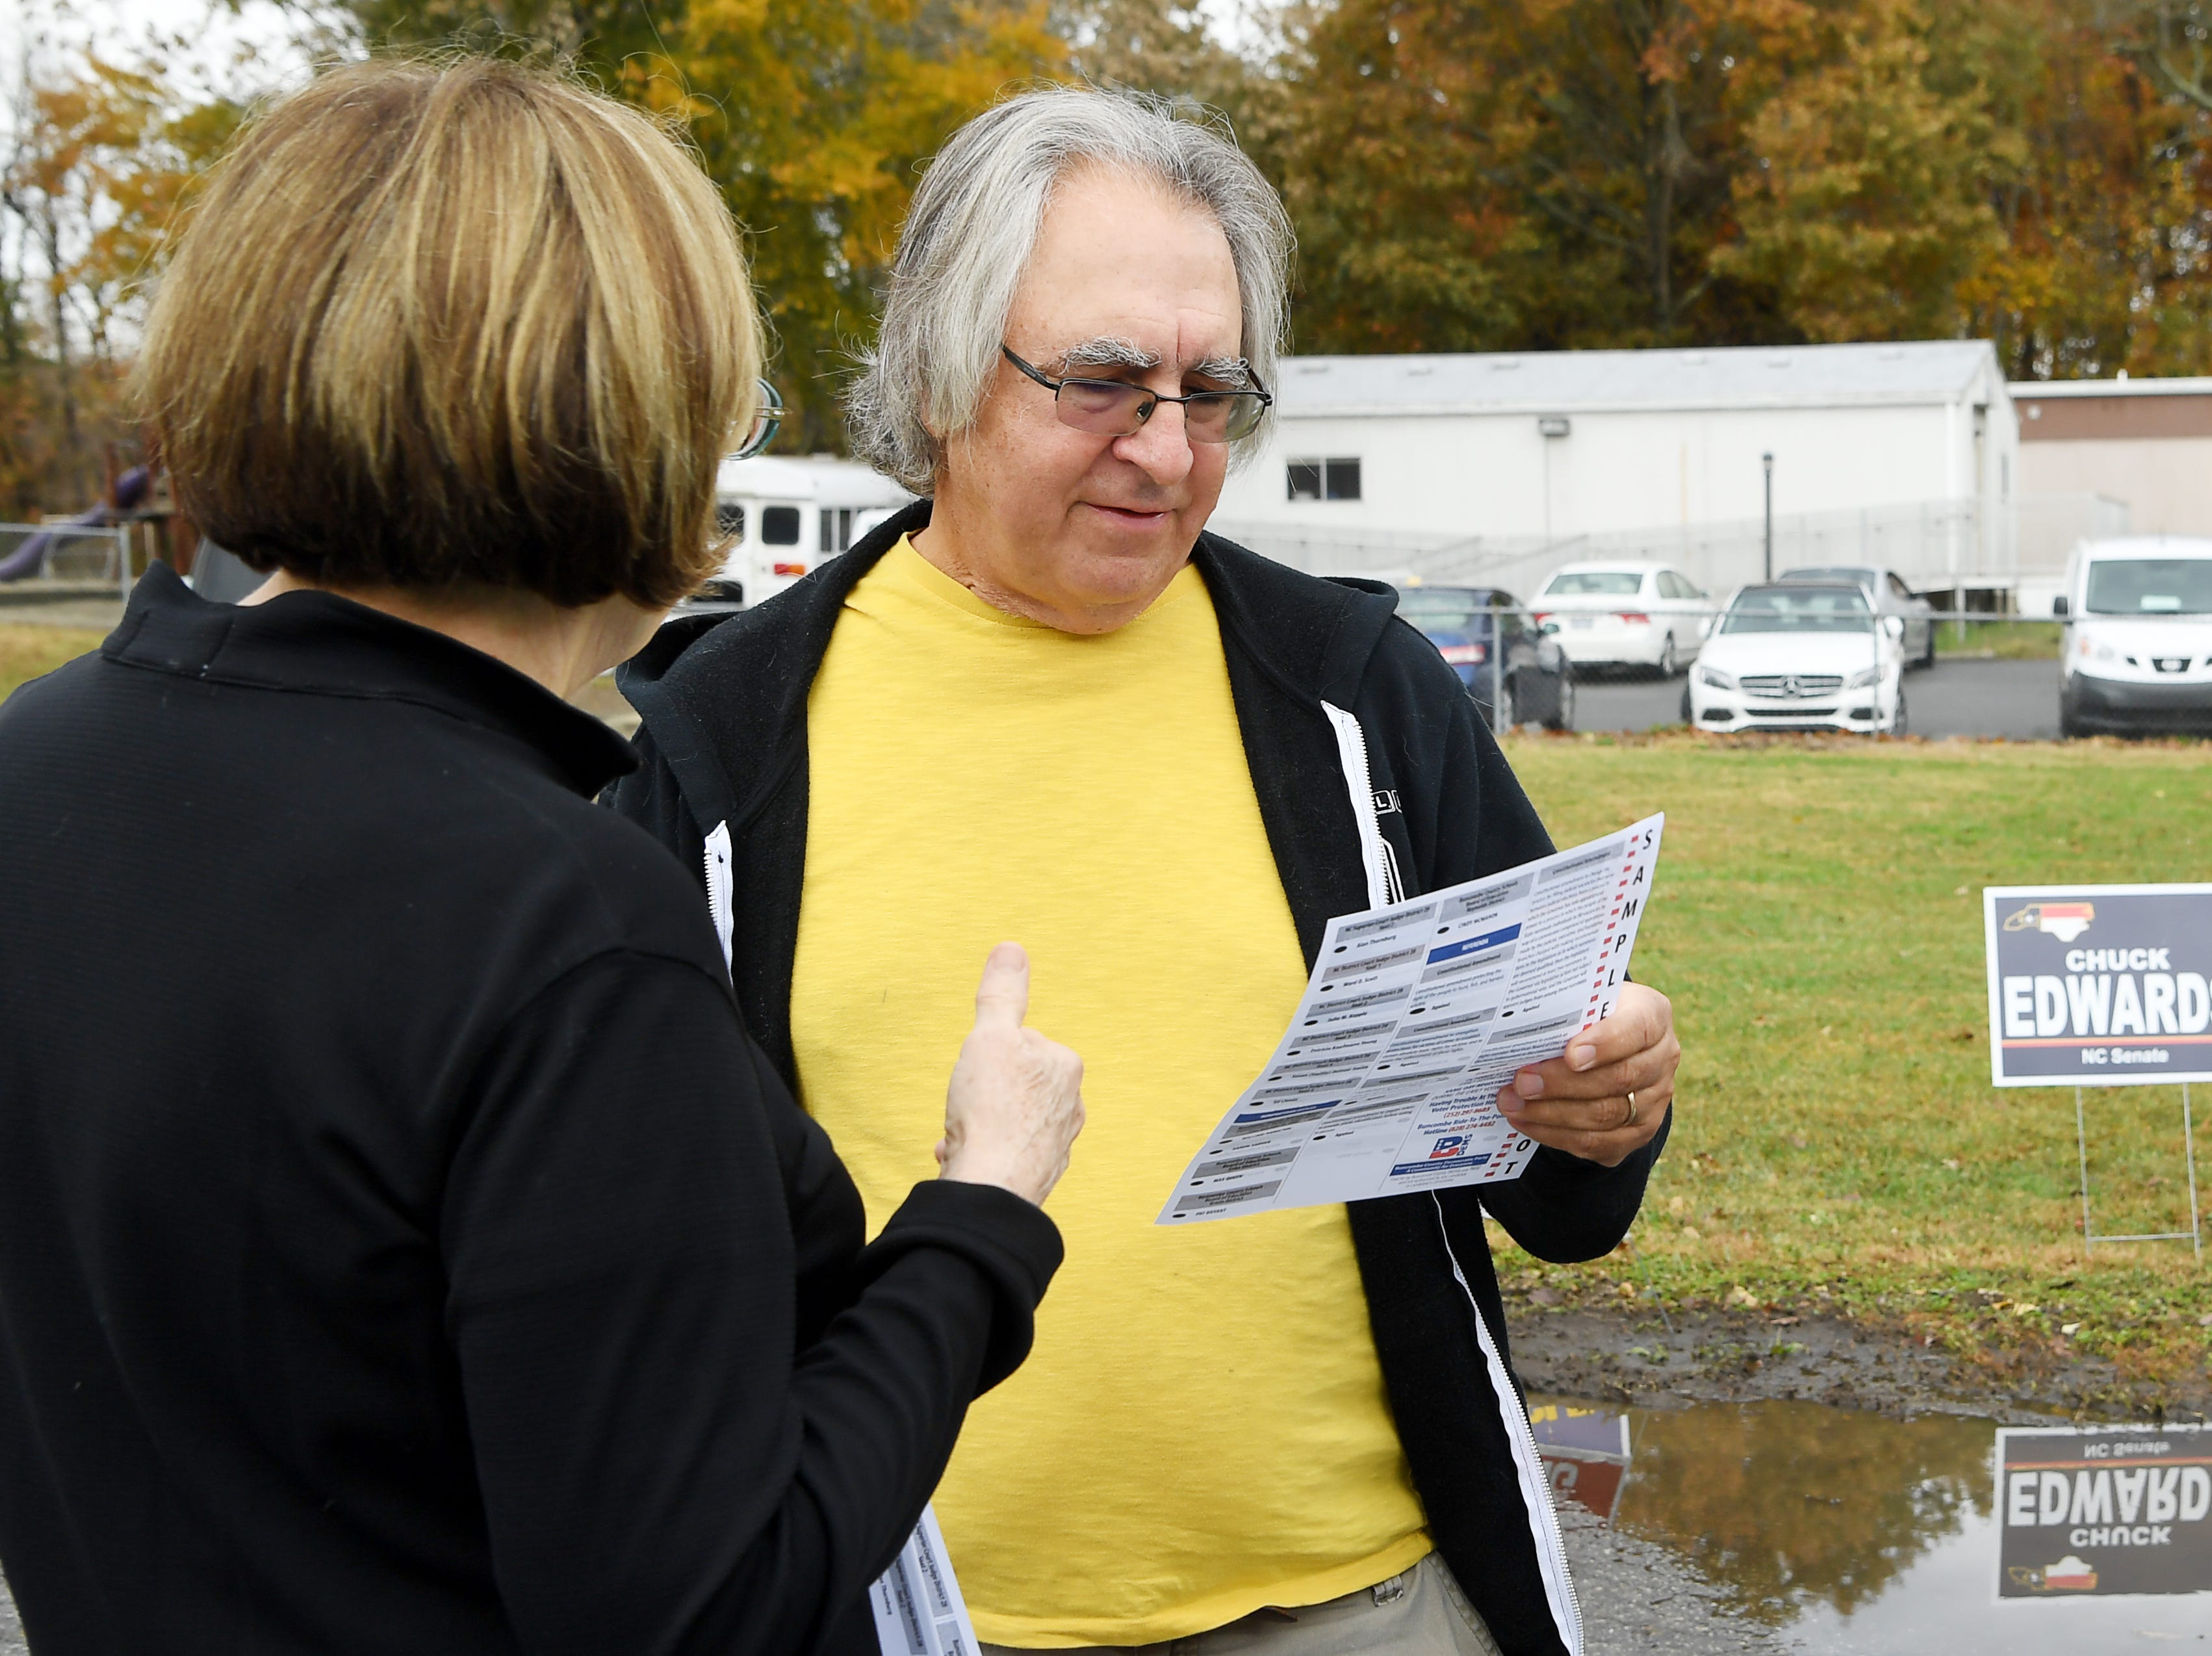 Mike Leippe views a sample ballot with Buncombe County Democrats volunteer Jacie Logan before voting at Emma Elementary Nov. 6, 2018.